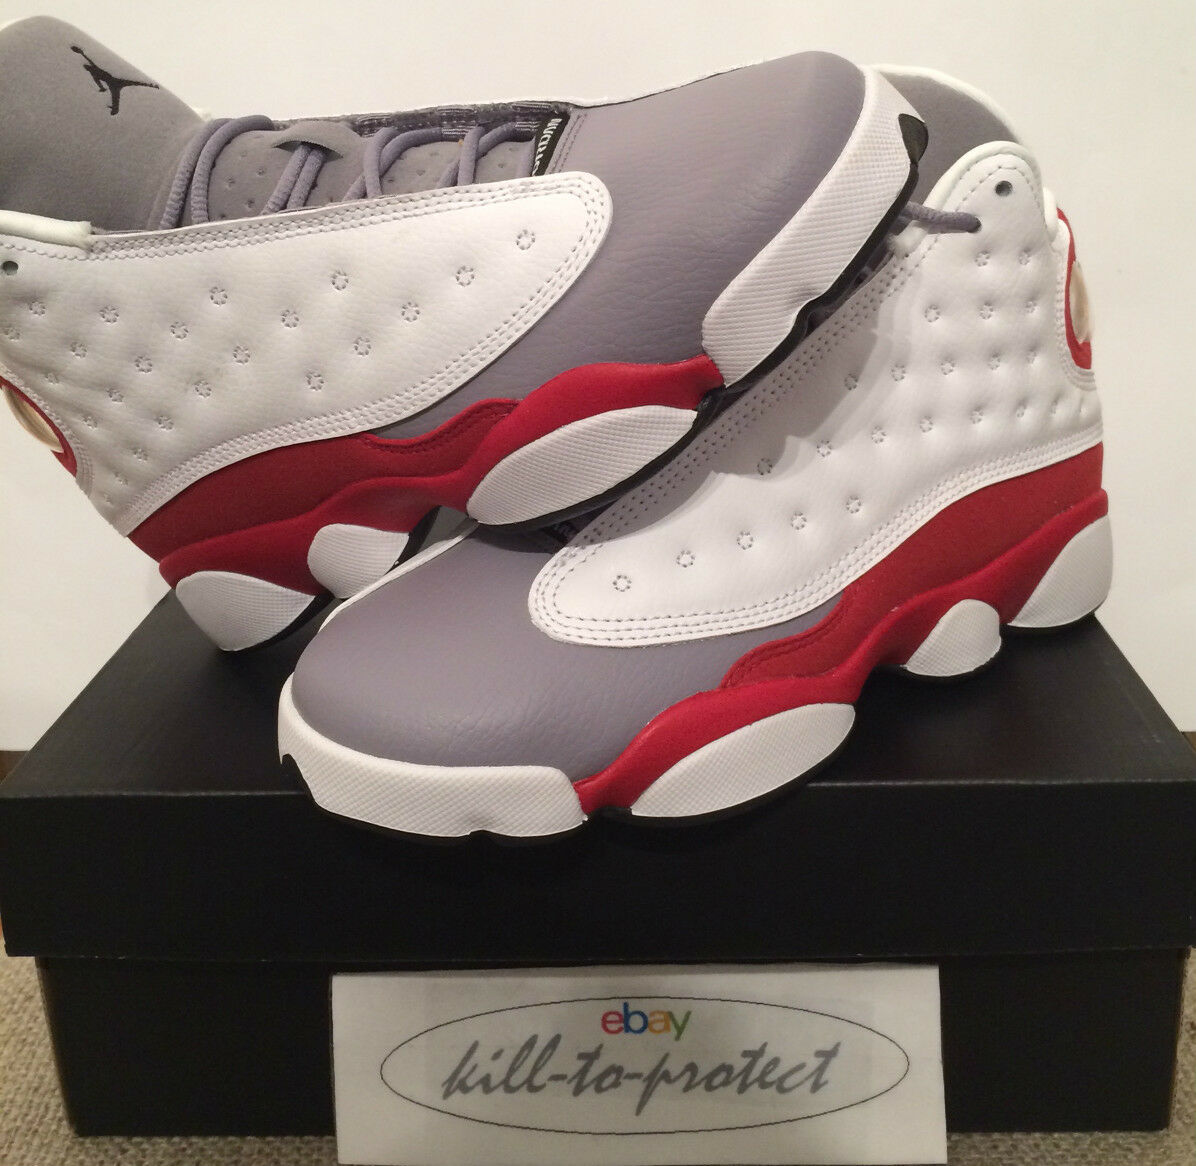 NIKE AIR JORDAN ONE 13 GREY TOE ROT GS Sz KIDS 4.5Y 5Y 5.5Y 6Y KIDS Sz 414574-126 2014 4cb763